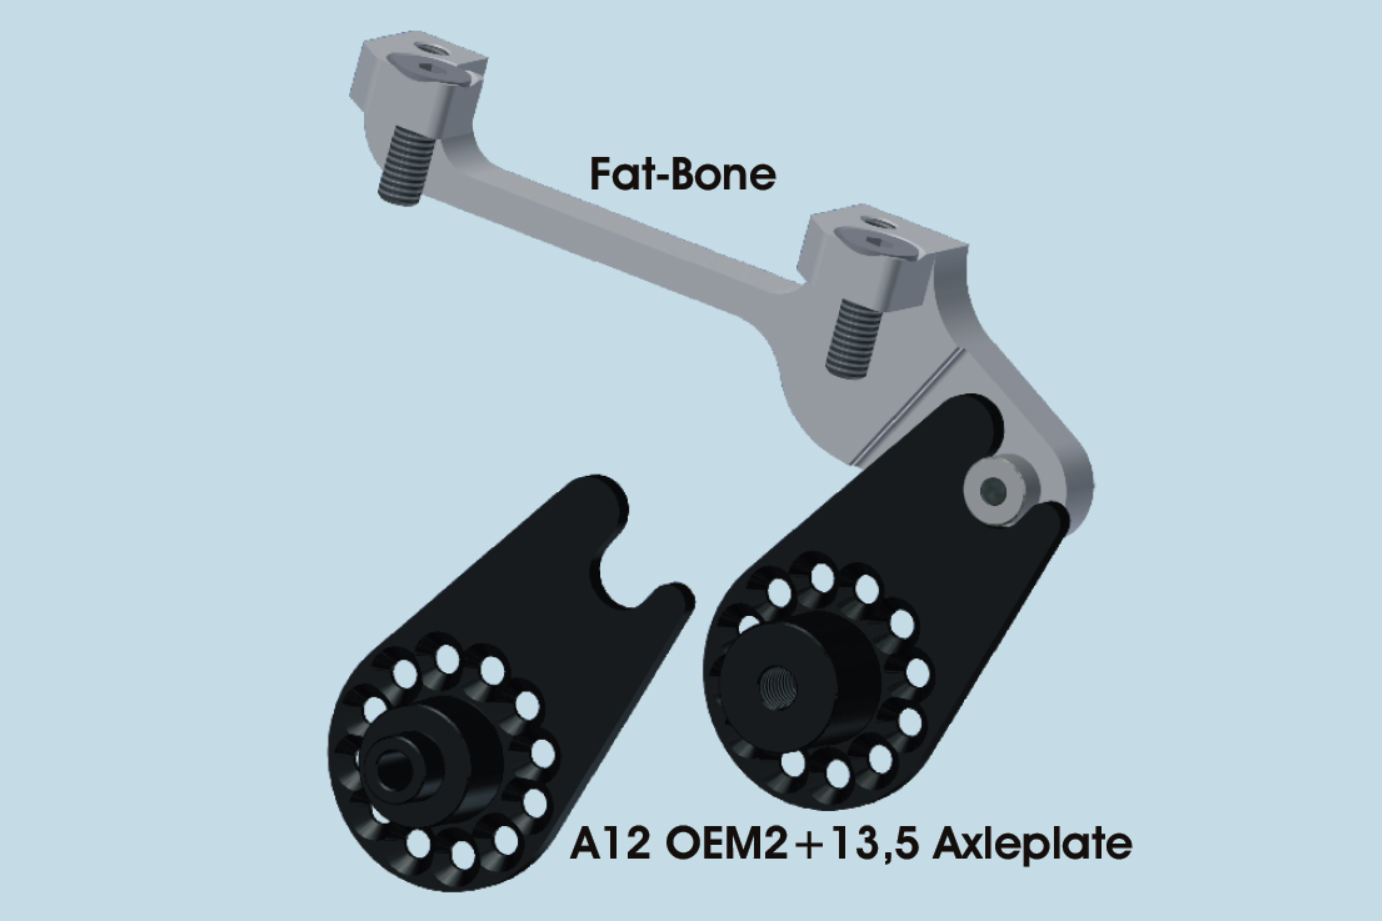 Fat-Bone Mount with A12 Axle Plates